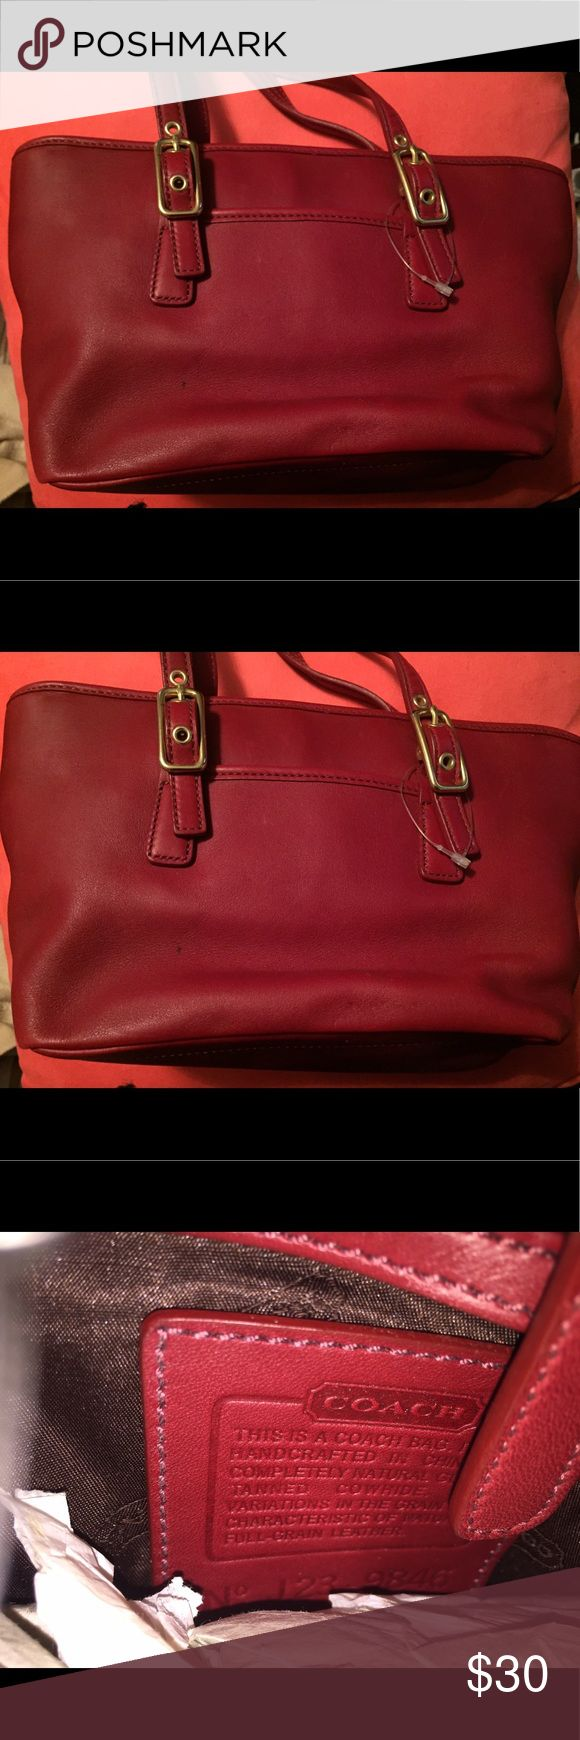 Coach Leather Bag Brand New Red Leather Coach Bag Coach Bags Satchels